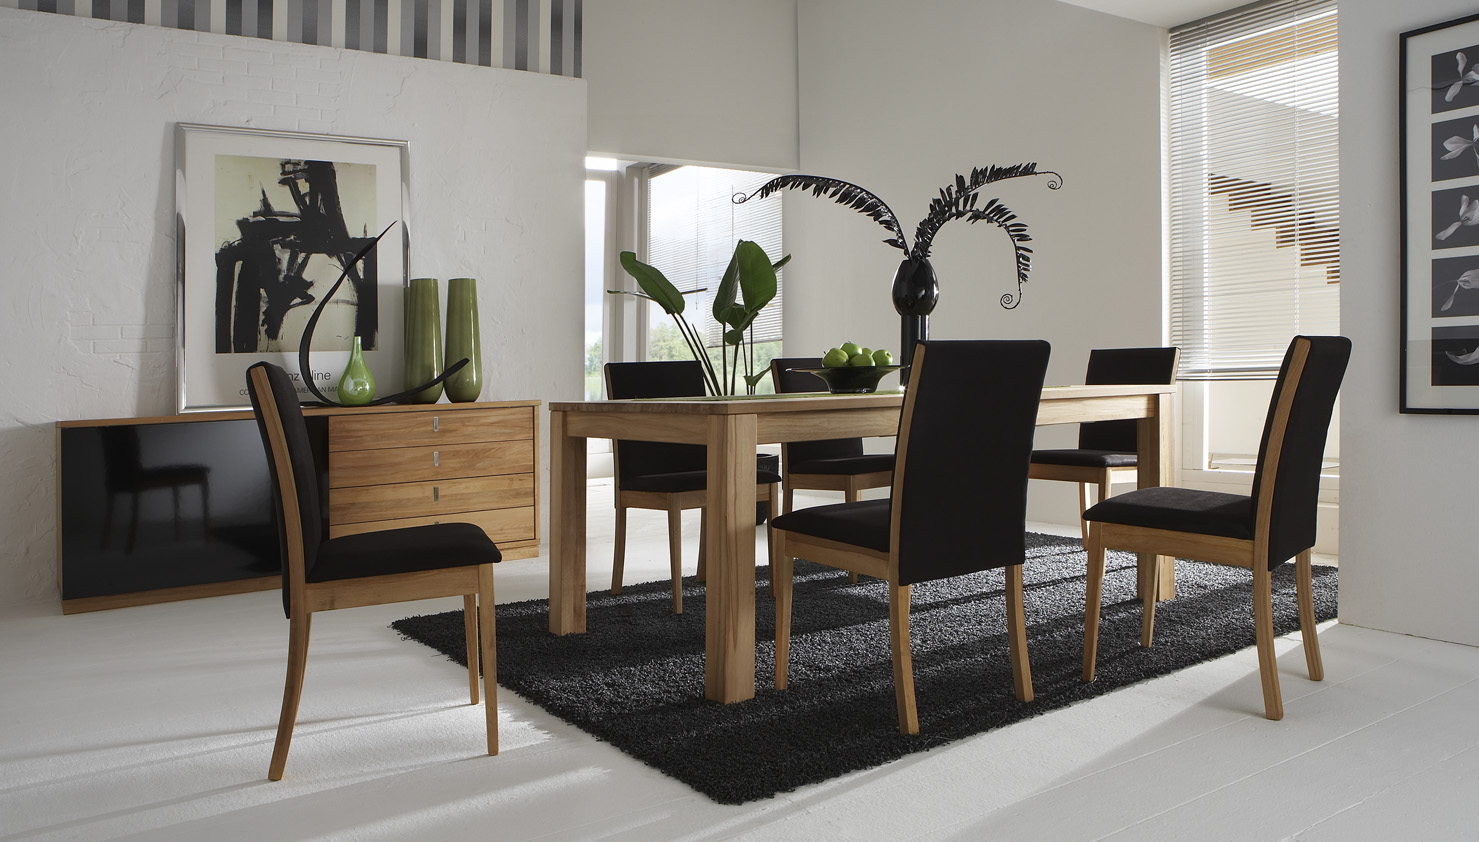 Fashion Furniture Design For Dining Room (View 8 of 18)